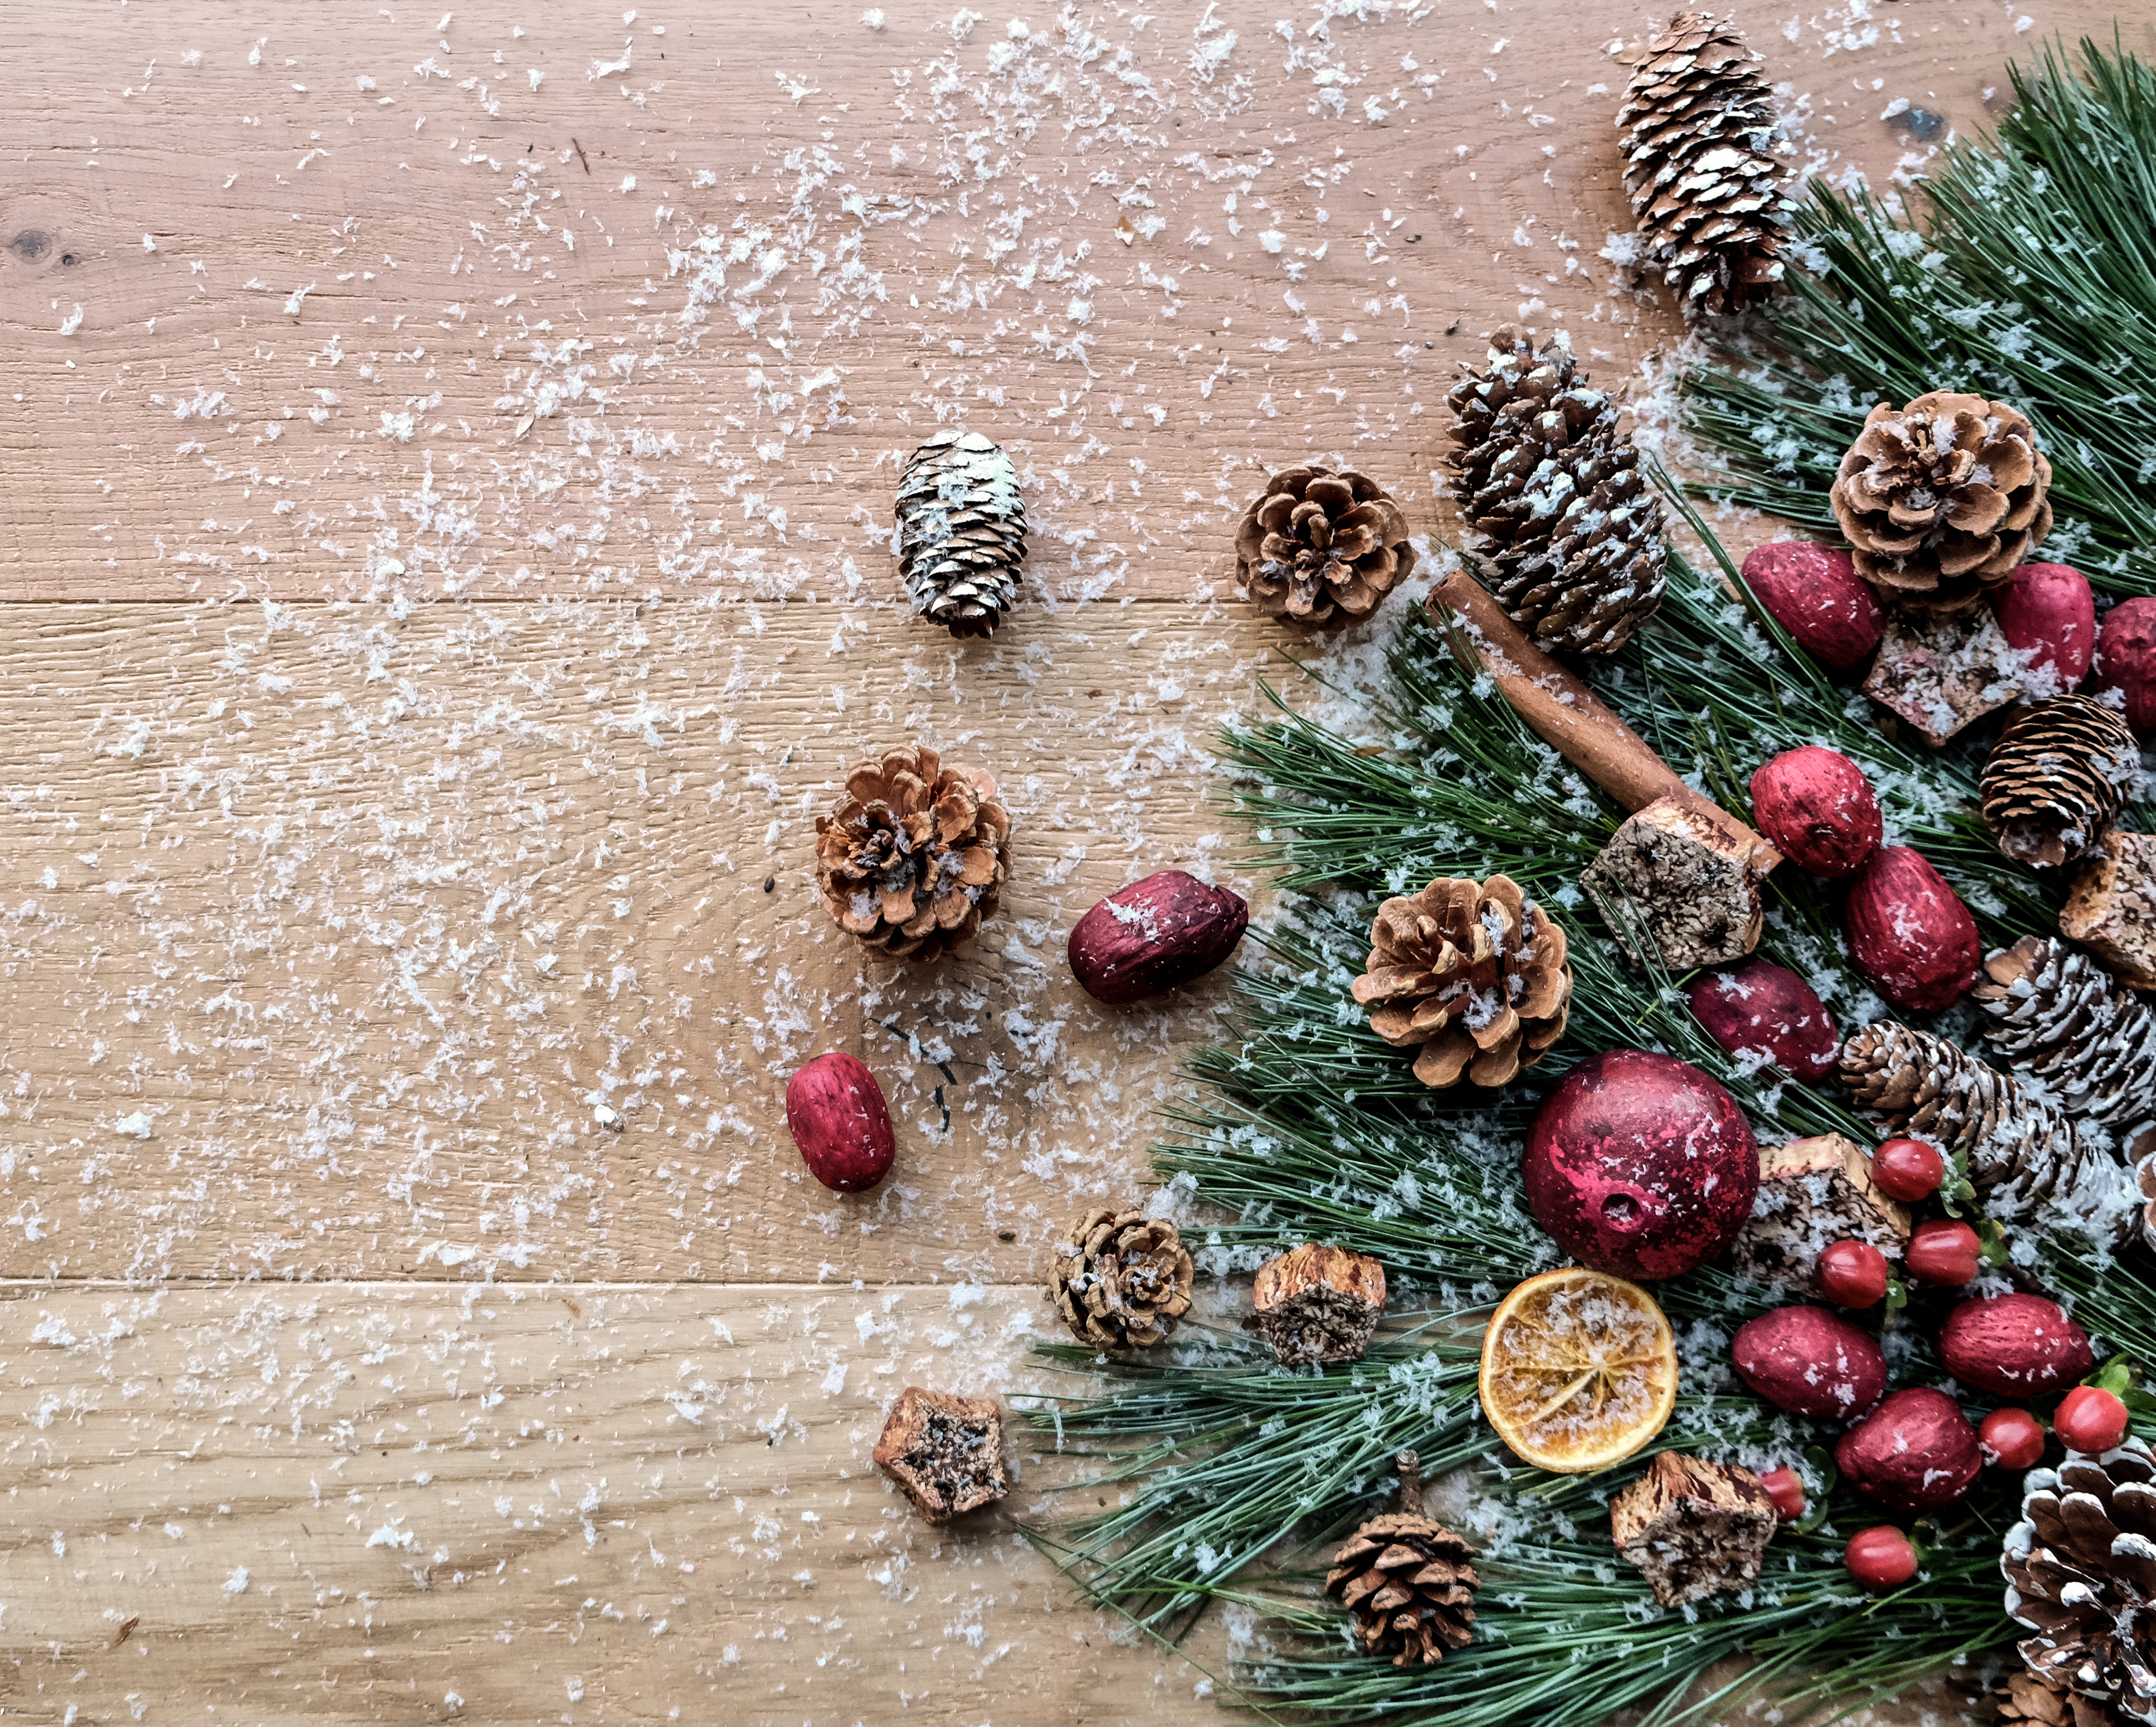 Metropolitan Hardwood Floors Christmas holiday image Kentwood flatlay- Pinecones, Pine tree branches, holly berries and snow